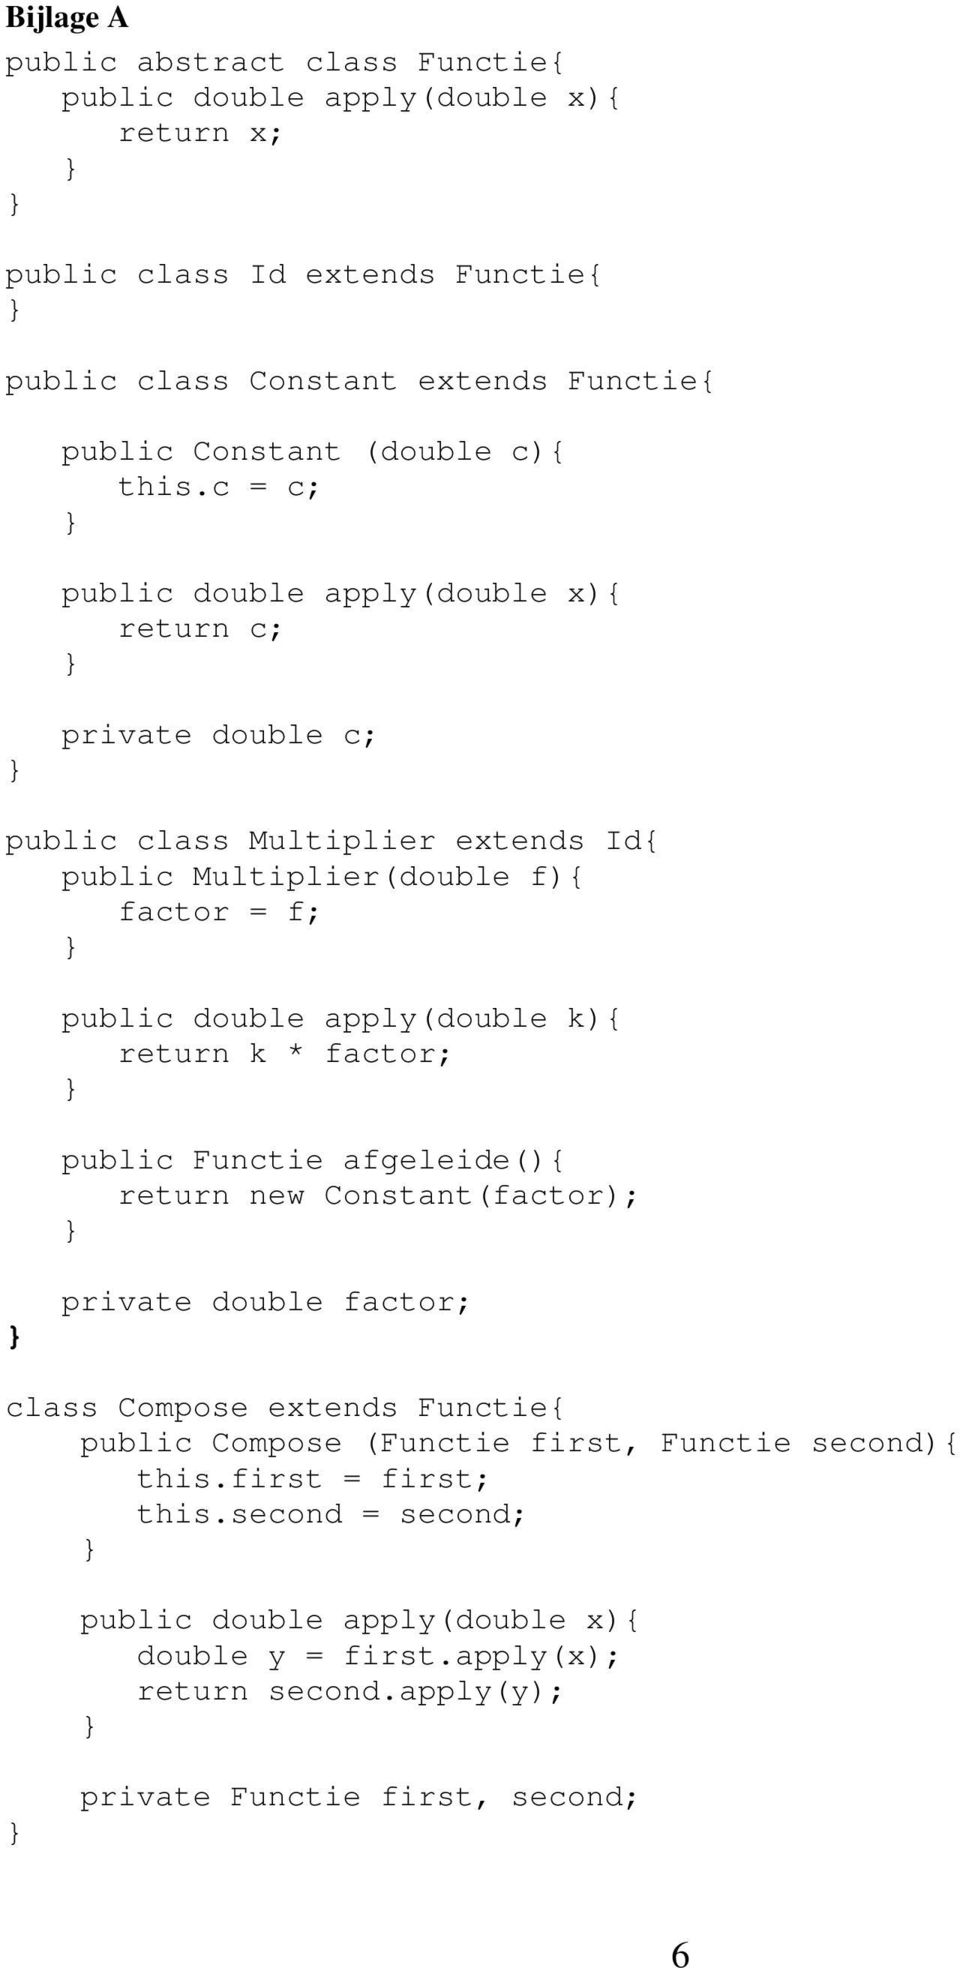 c = c; public double apply(double x){ return c; private double c; public class Multiplier extends Id{ public Multiplier(double f){ factor = f; public double apply(double k){